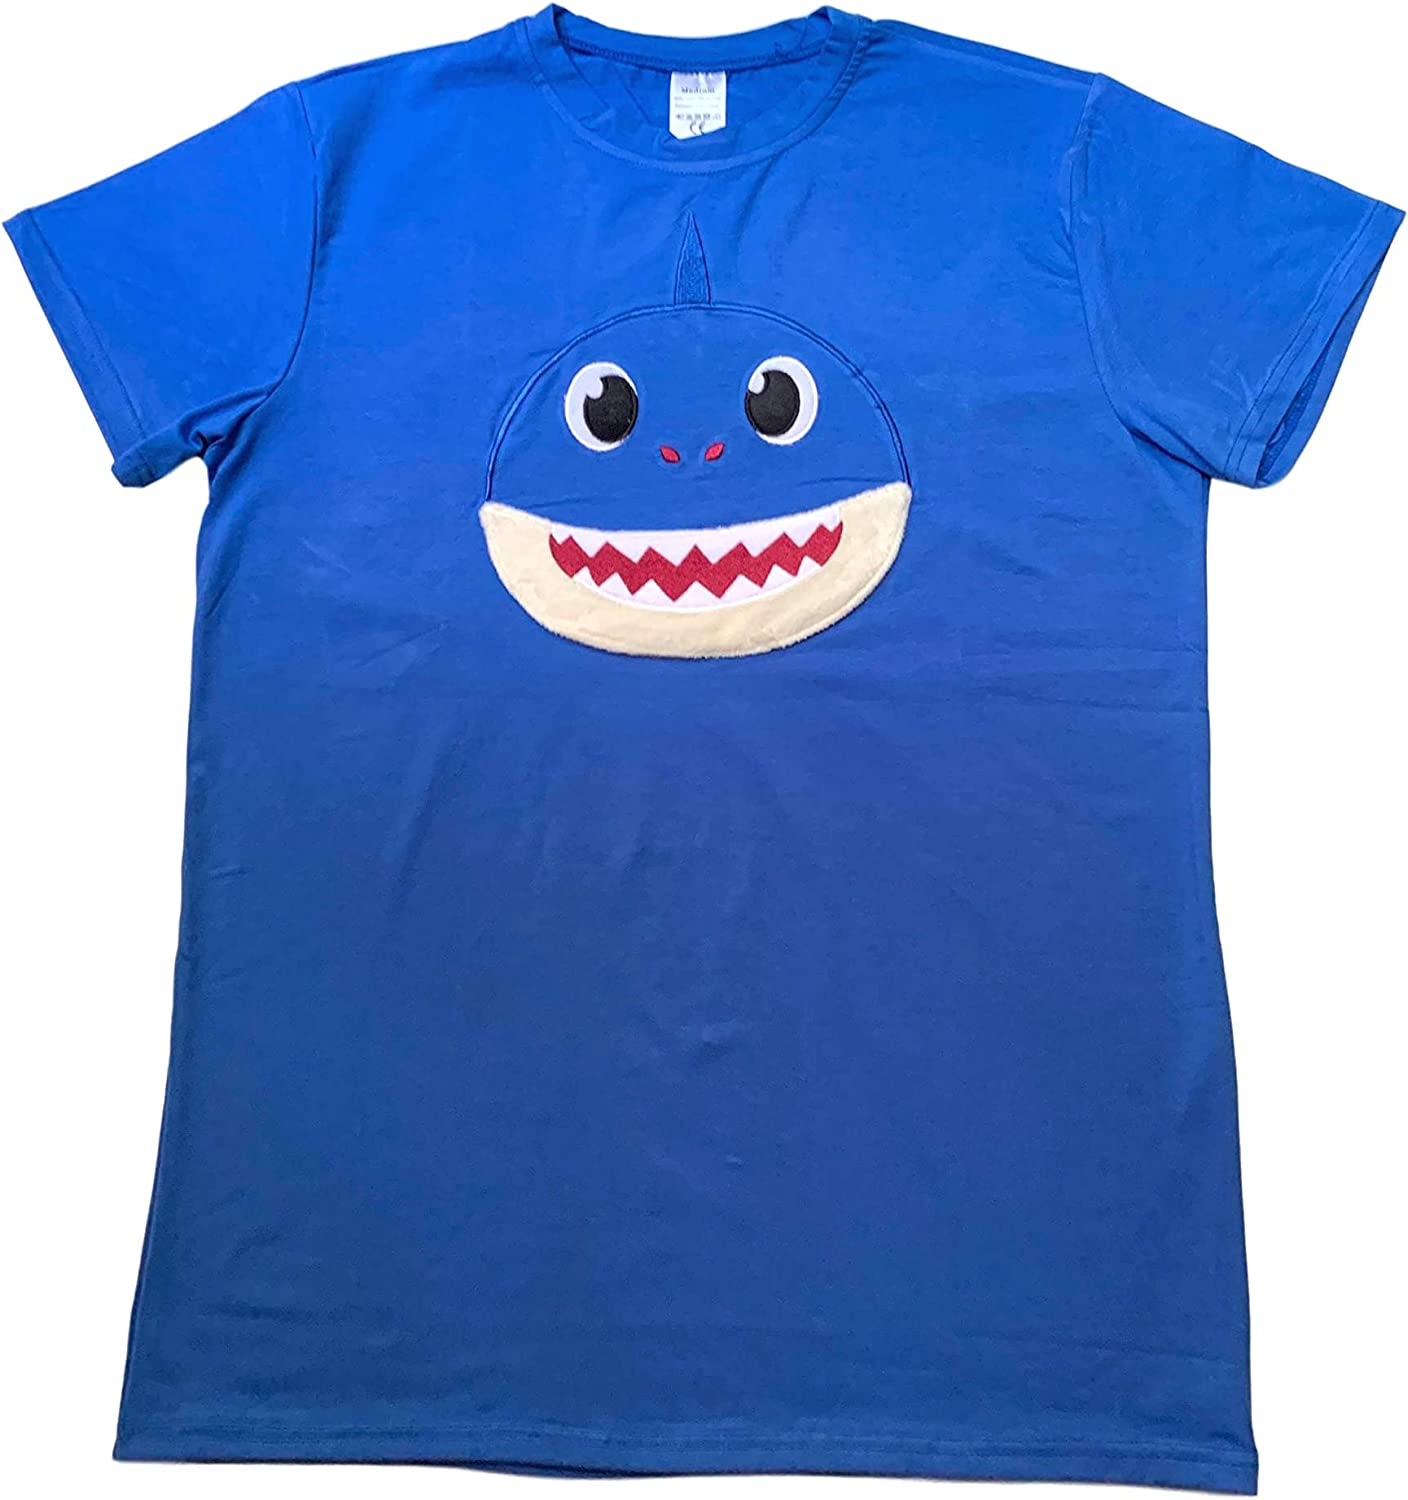 ComfyCamper Shark Shirt for Baby Boys Girls Kids Toddler Daddy Mommy and The Entire Family